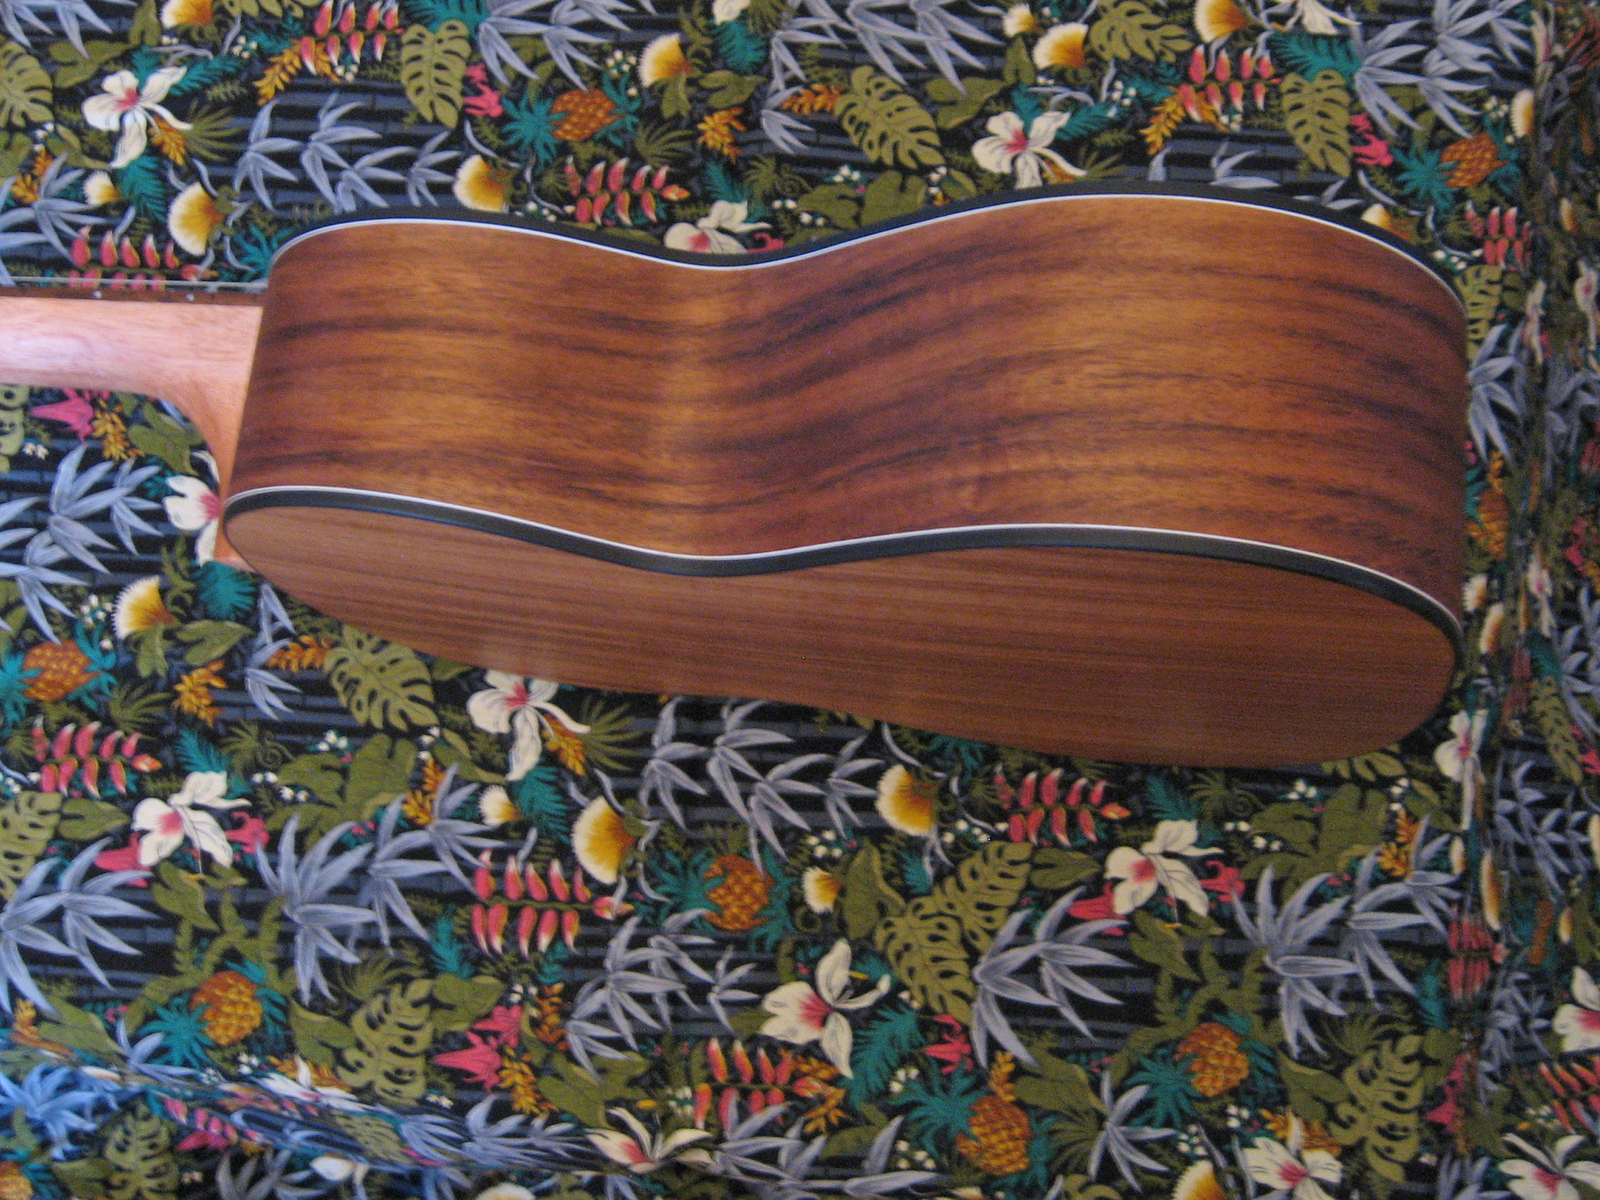 Kahua Tenor Size Ukulele/Asian Koa Wood/Gorgeous/27""